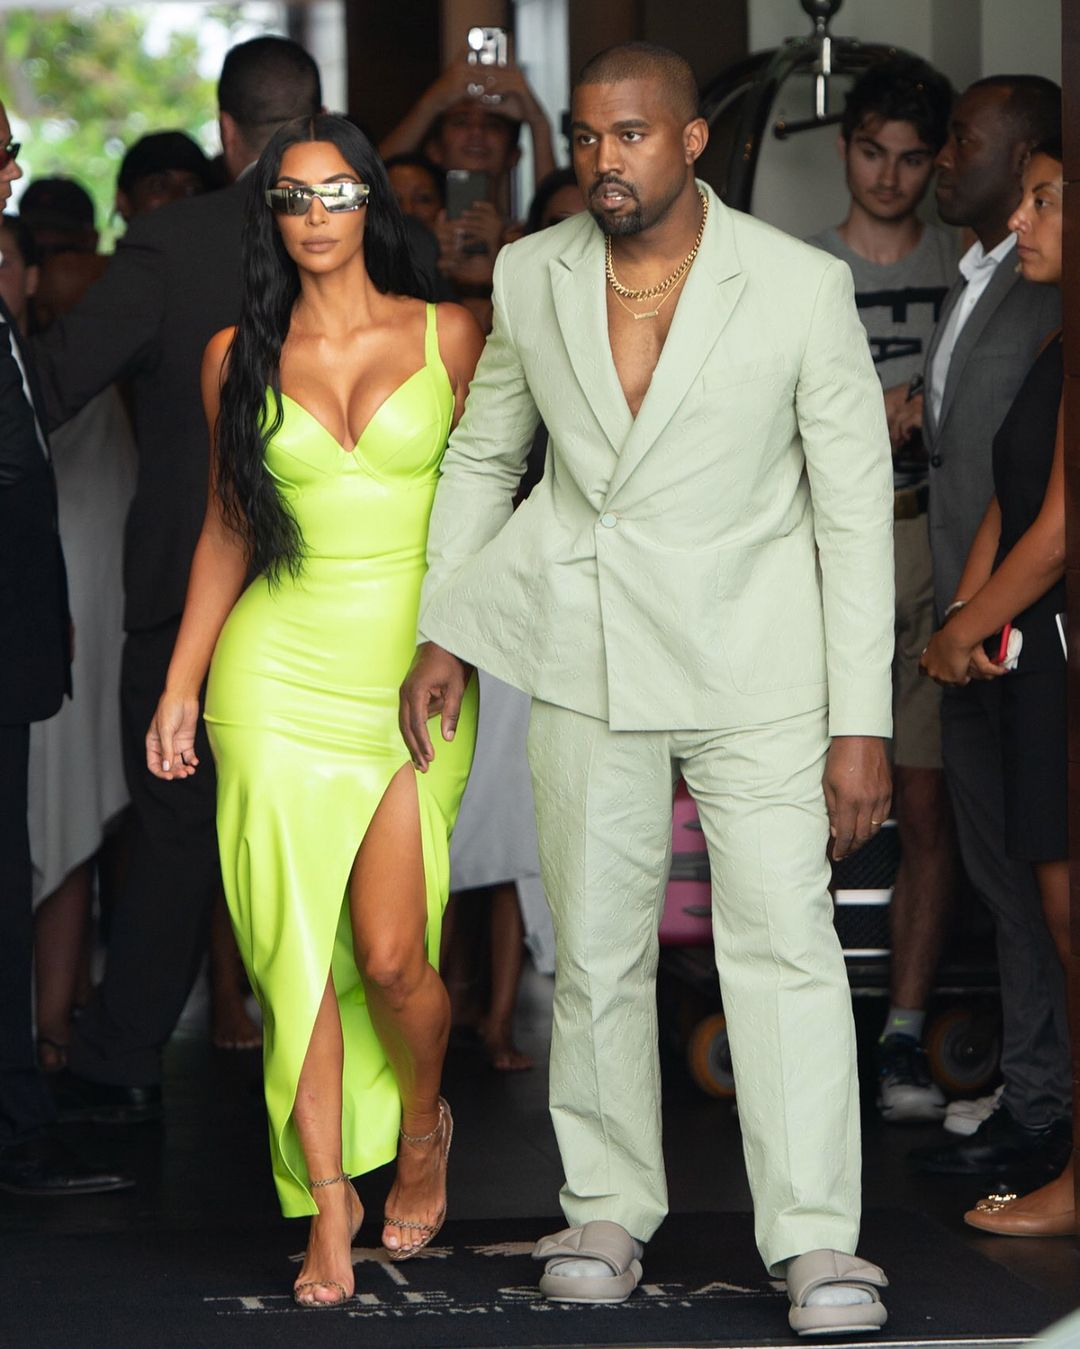 Kim And Kanye In Miami Kanye Wears A Louis Vuitton Suit With New Unreleased Yeezy Slide Kim Kardashian Style Outfits Kim Kardashian Outfits Kanye West And Kim